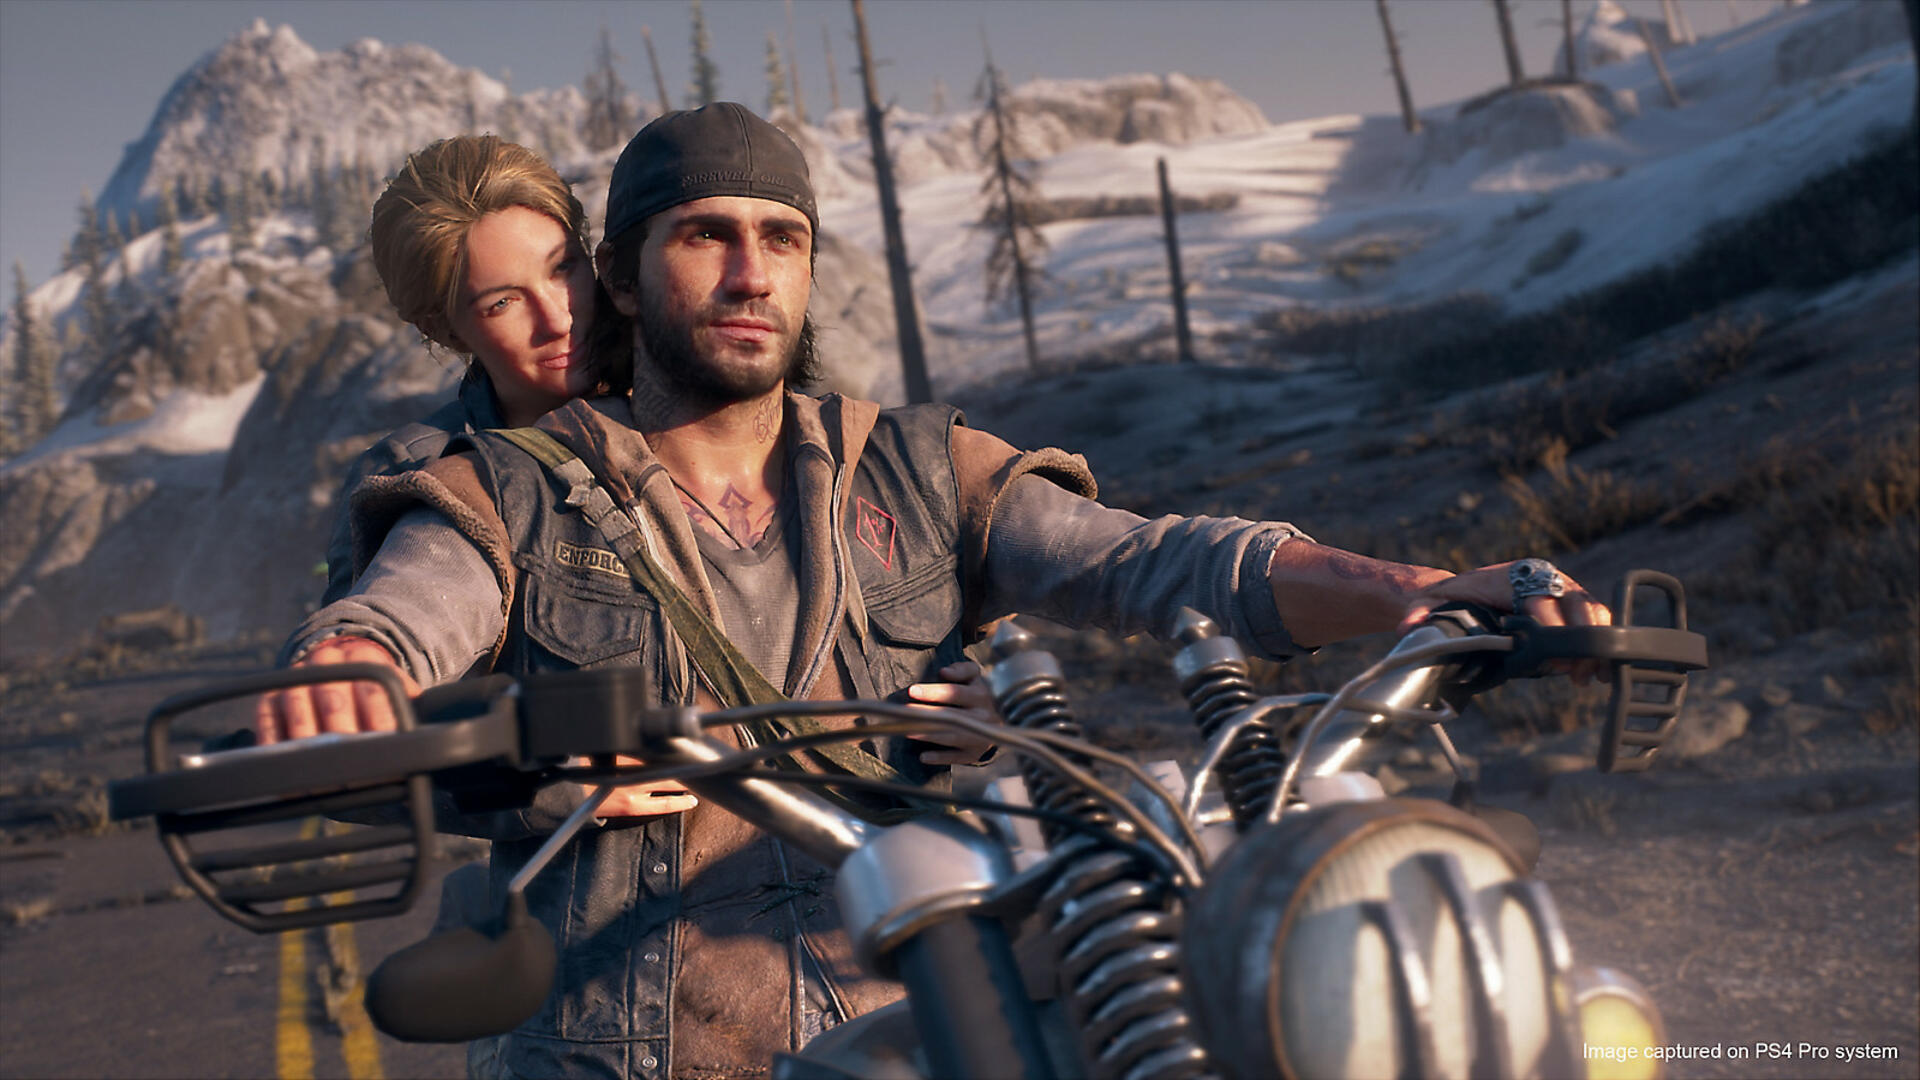 Days Gone Weapons - Best Weapons, Weapons List, Can You Store Weapons?